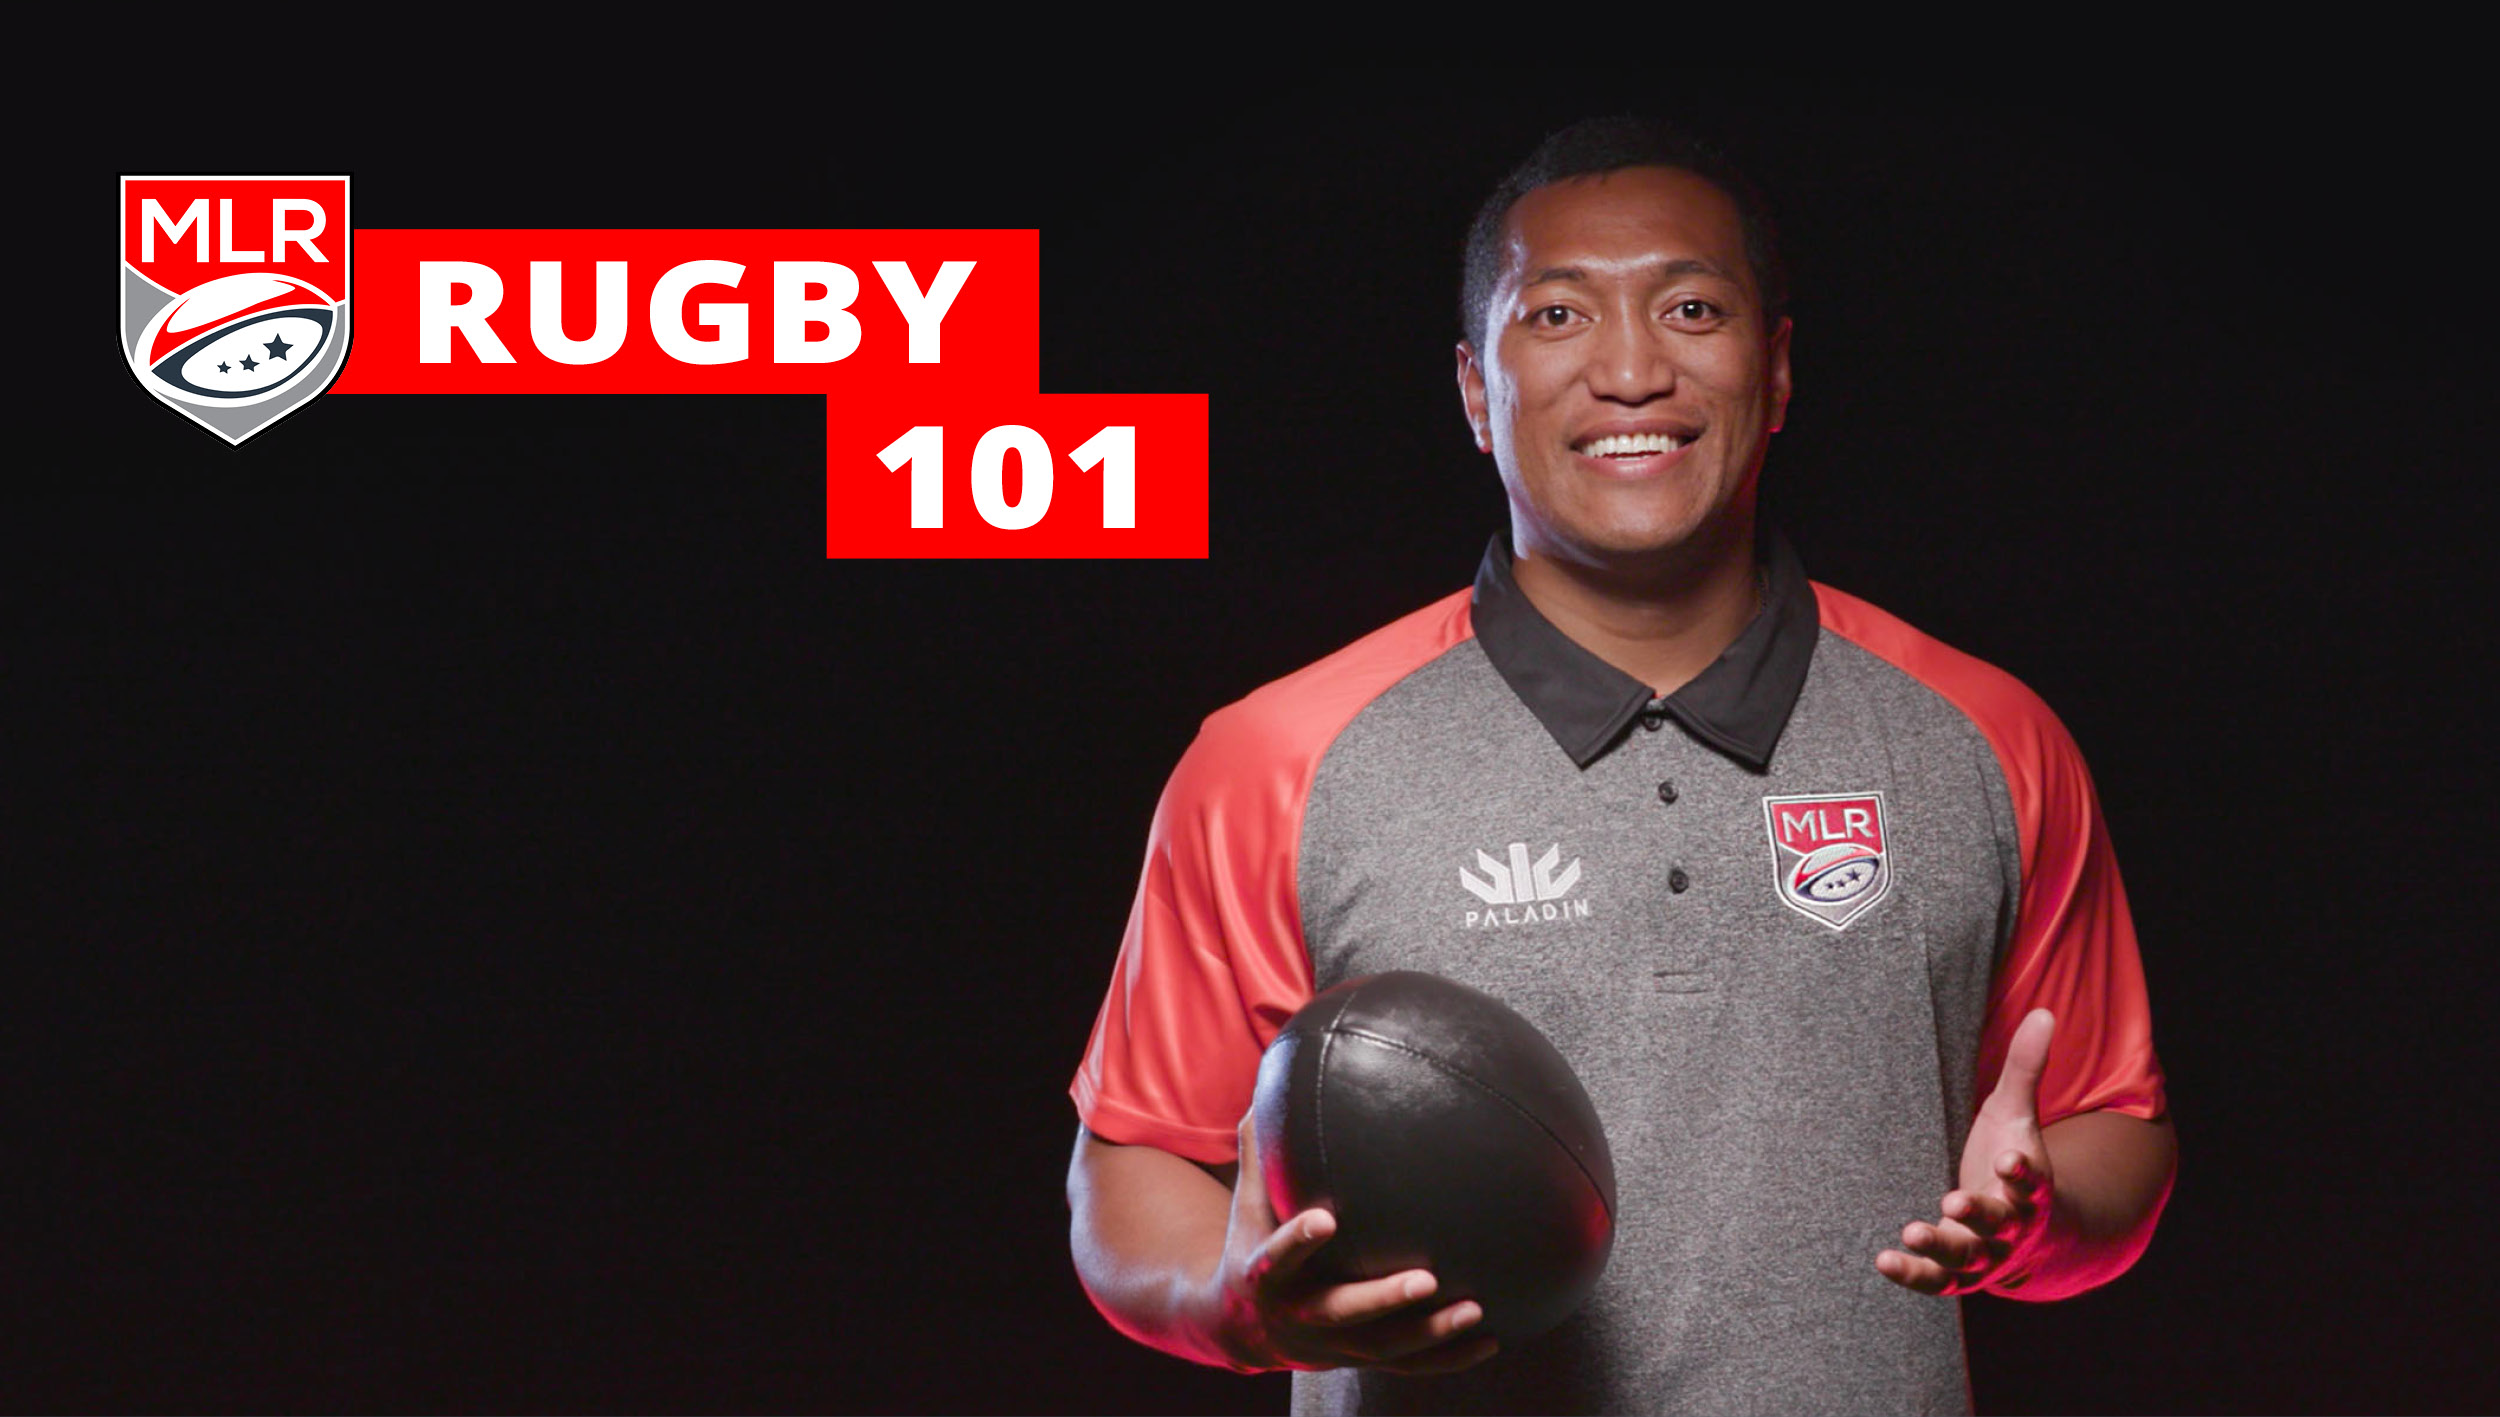 Rugby 101